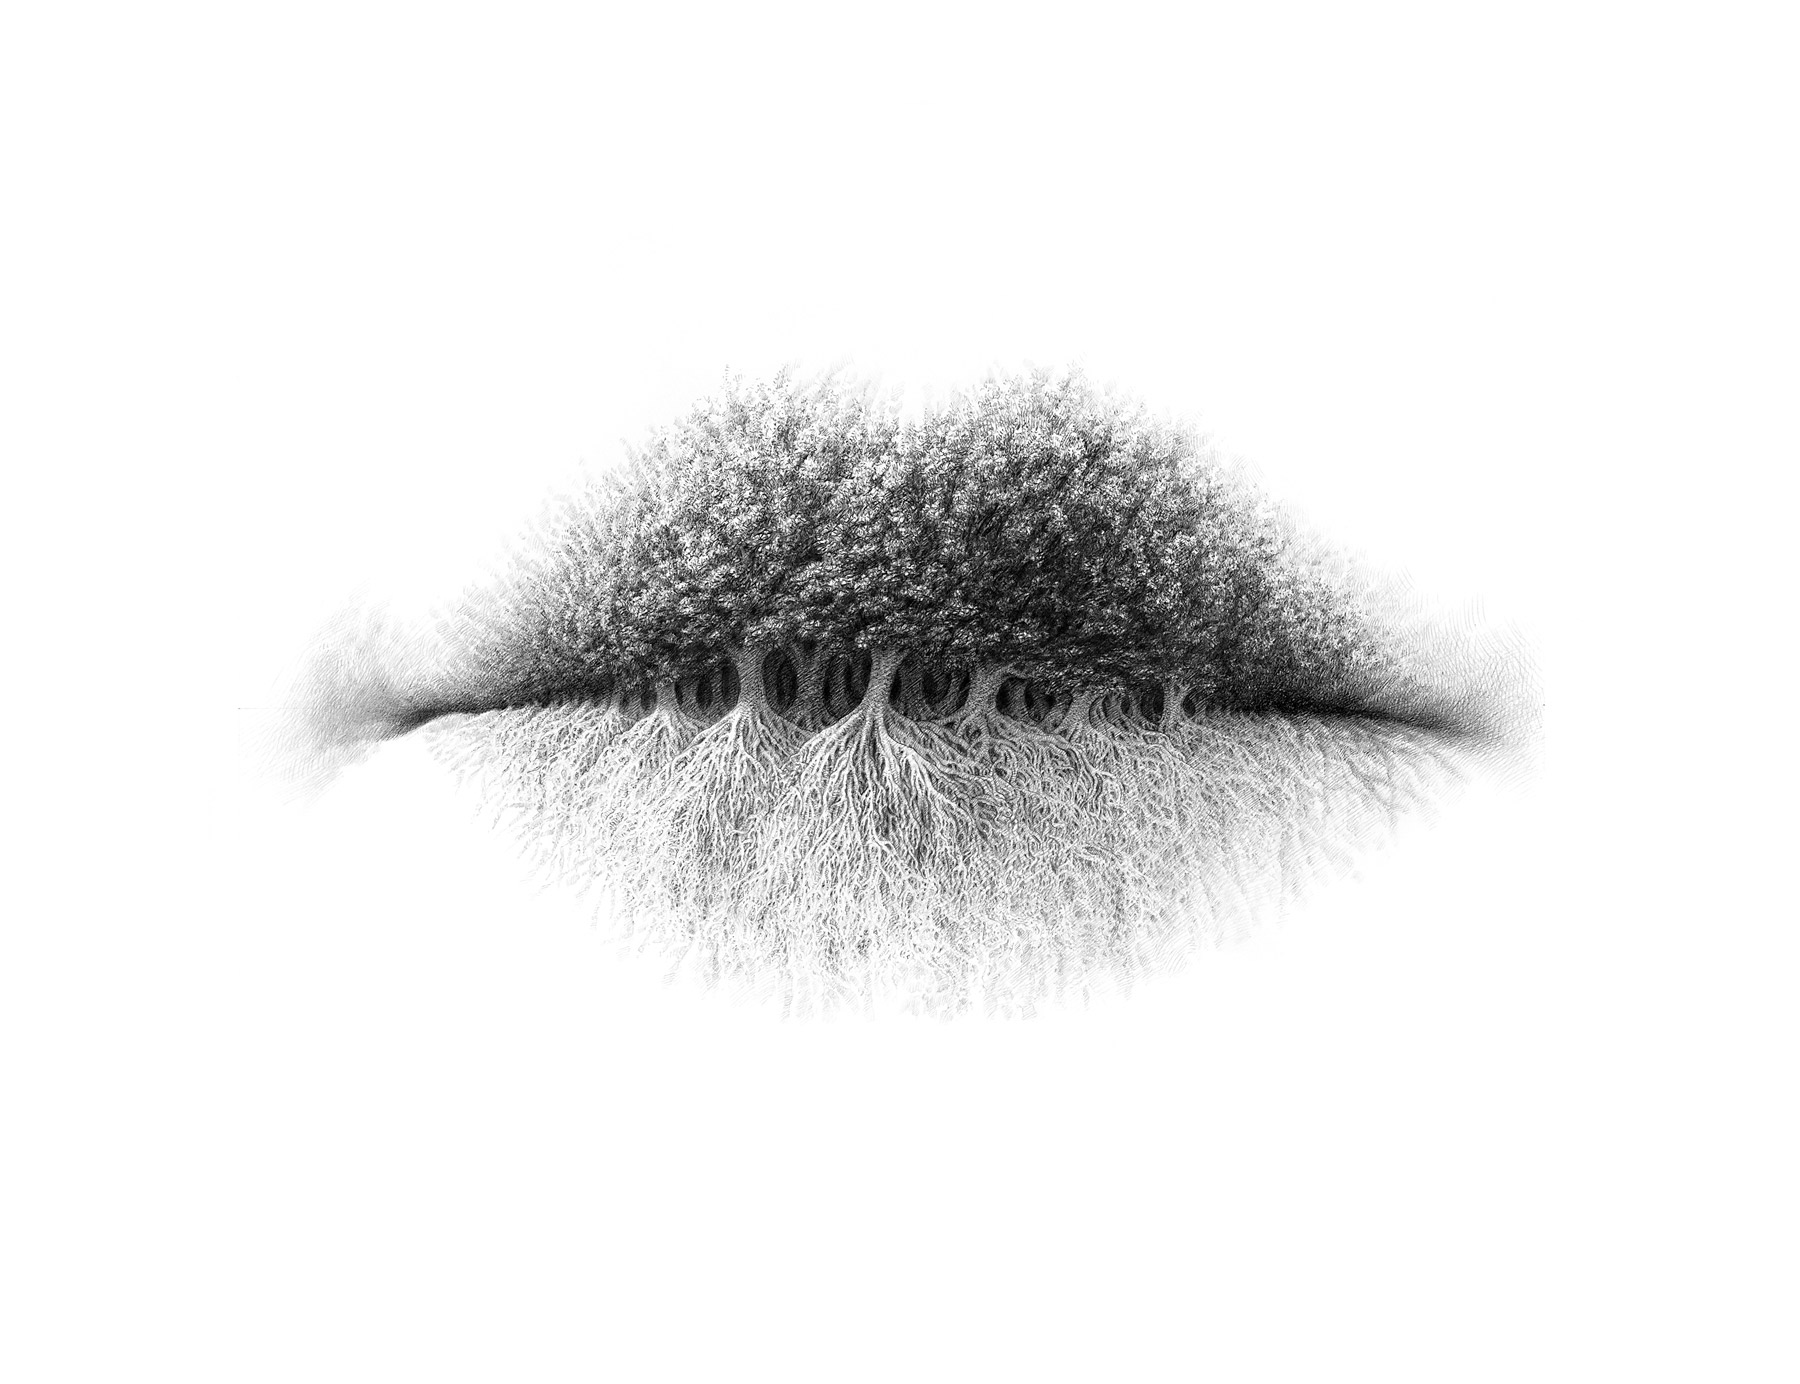 lips-series-01.10-authenticity.jpg